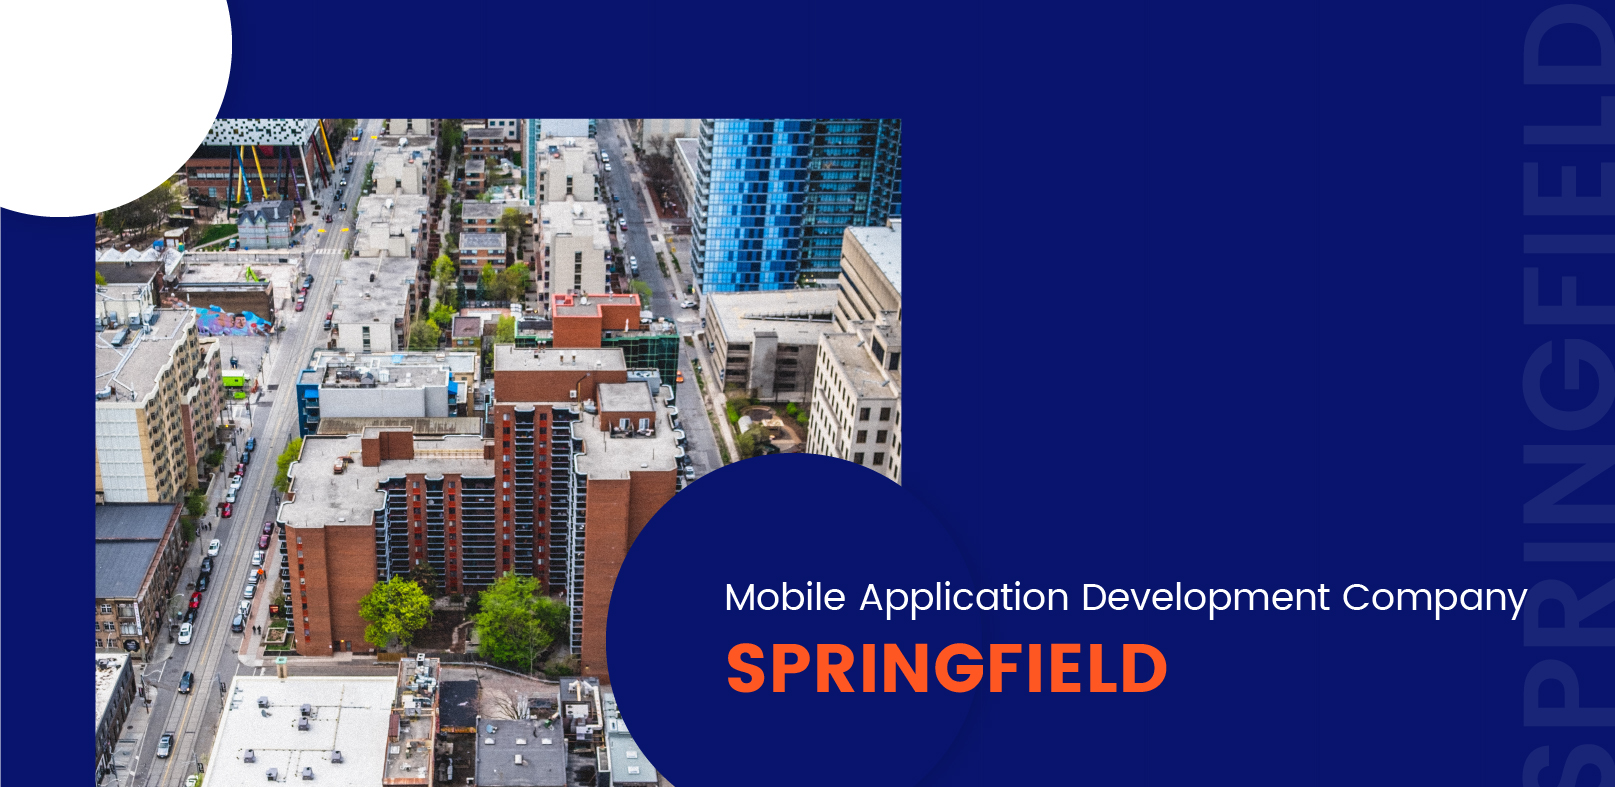 Mobile Application Development Company in Springfield - WebClues Infotech